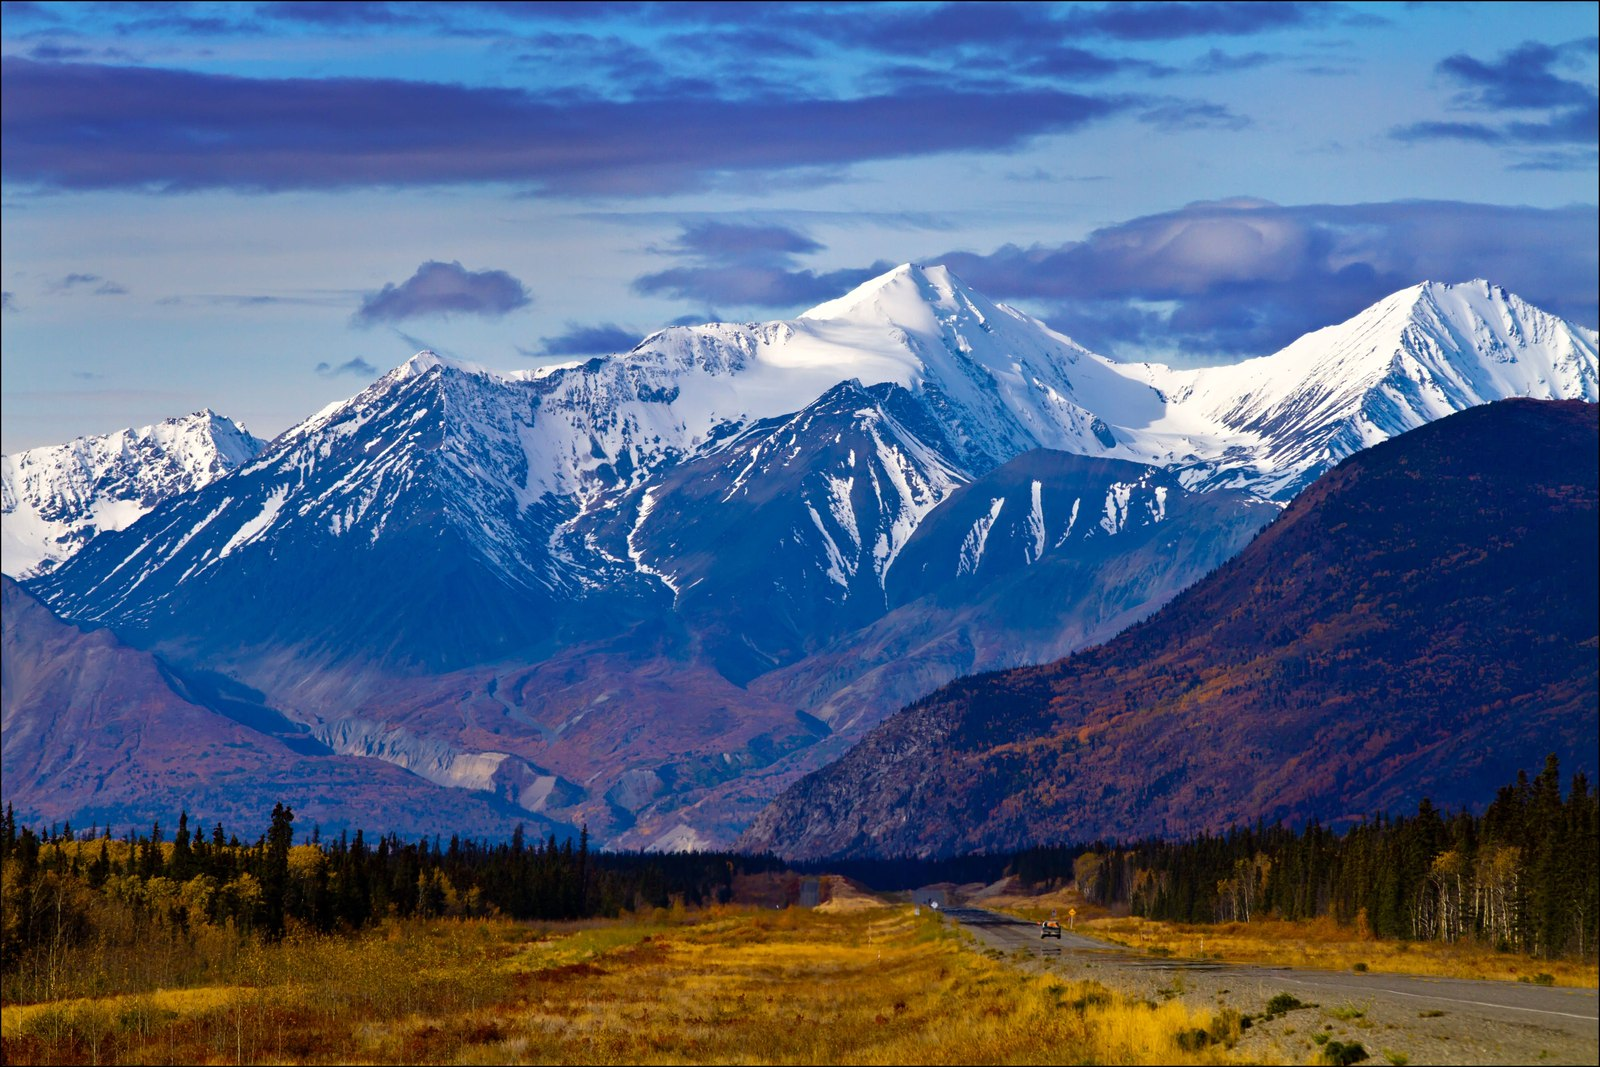 The Yukon - Alaska Quest